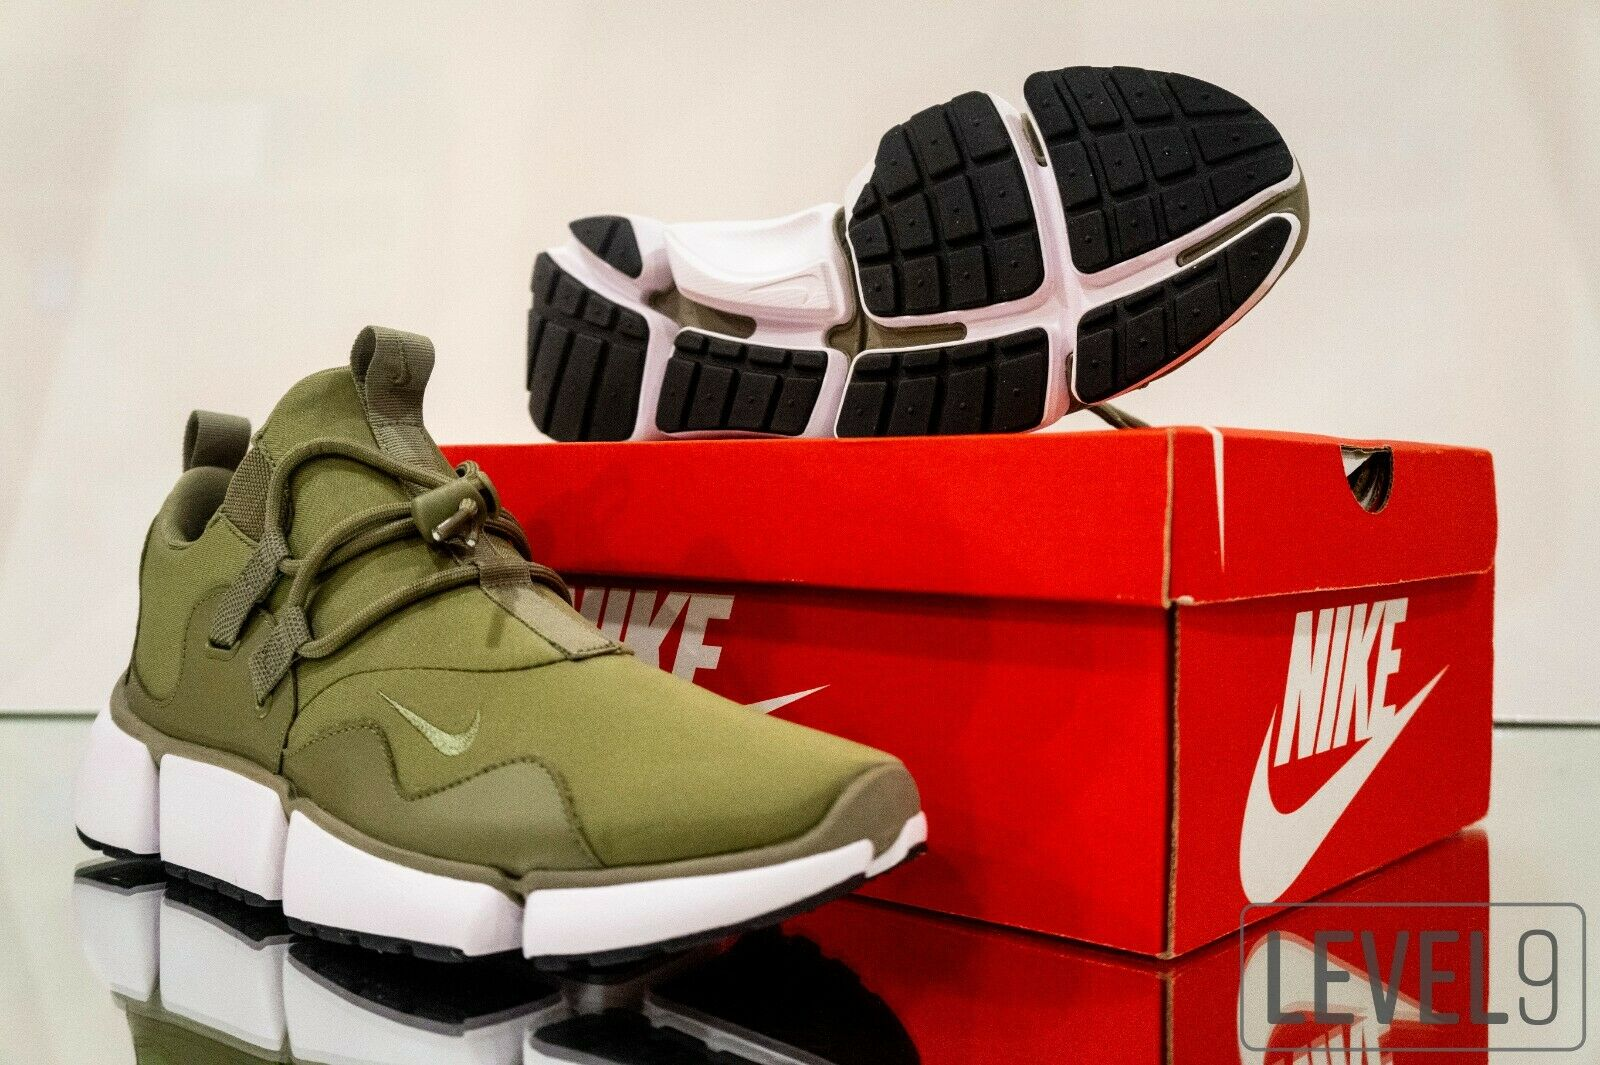 Nike Pocketknife DM (898033 200) Olive Green SIZE  10.5